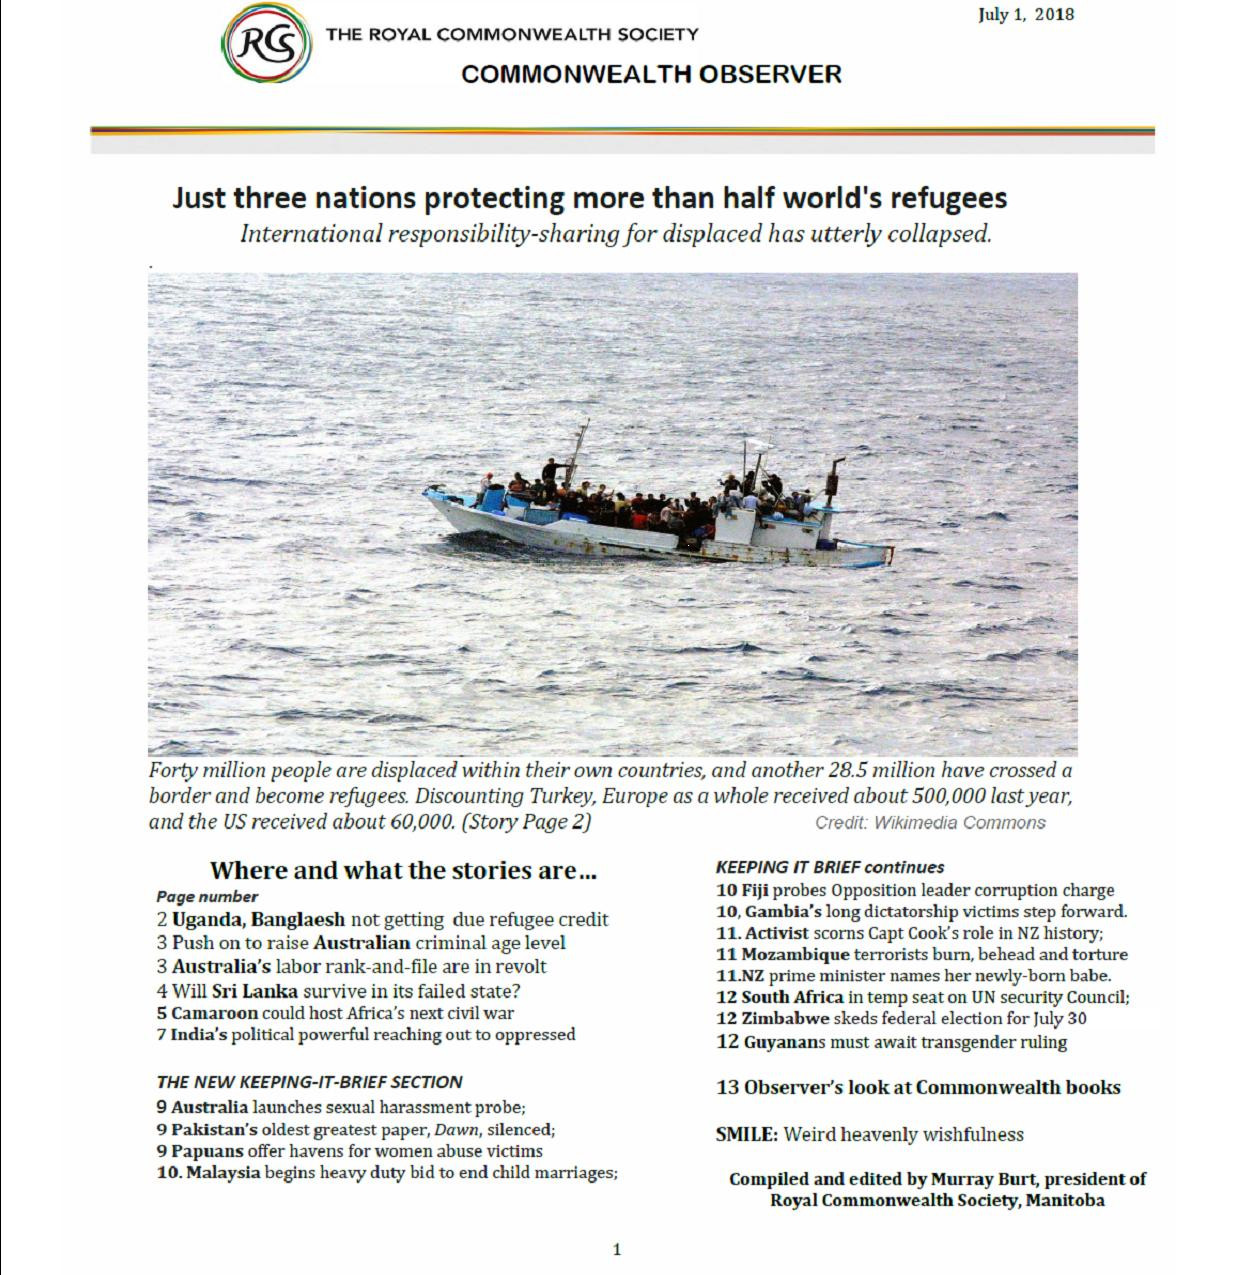 July 2018 Commonwealth Observer